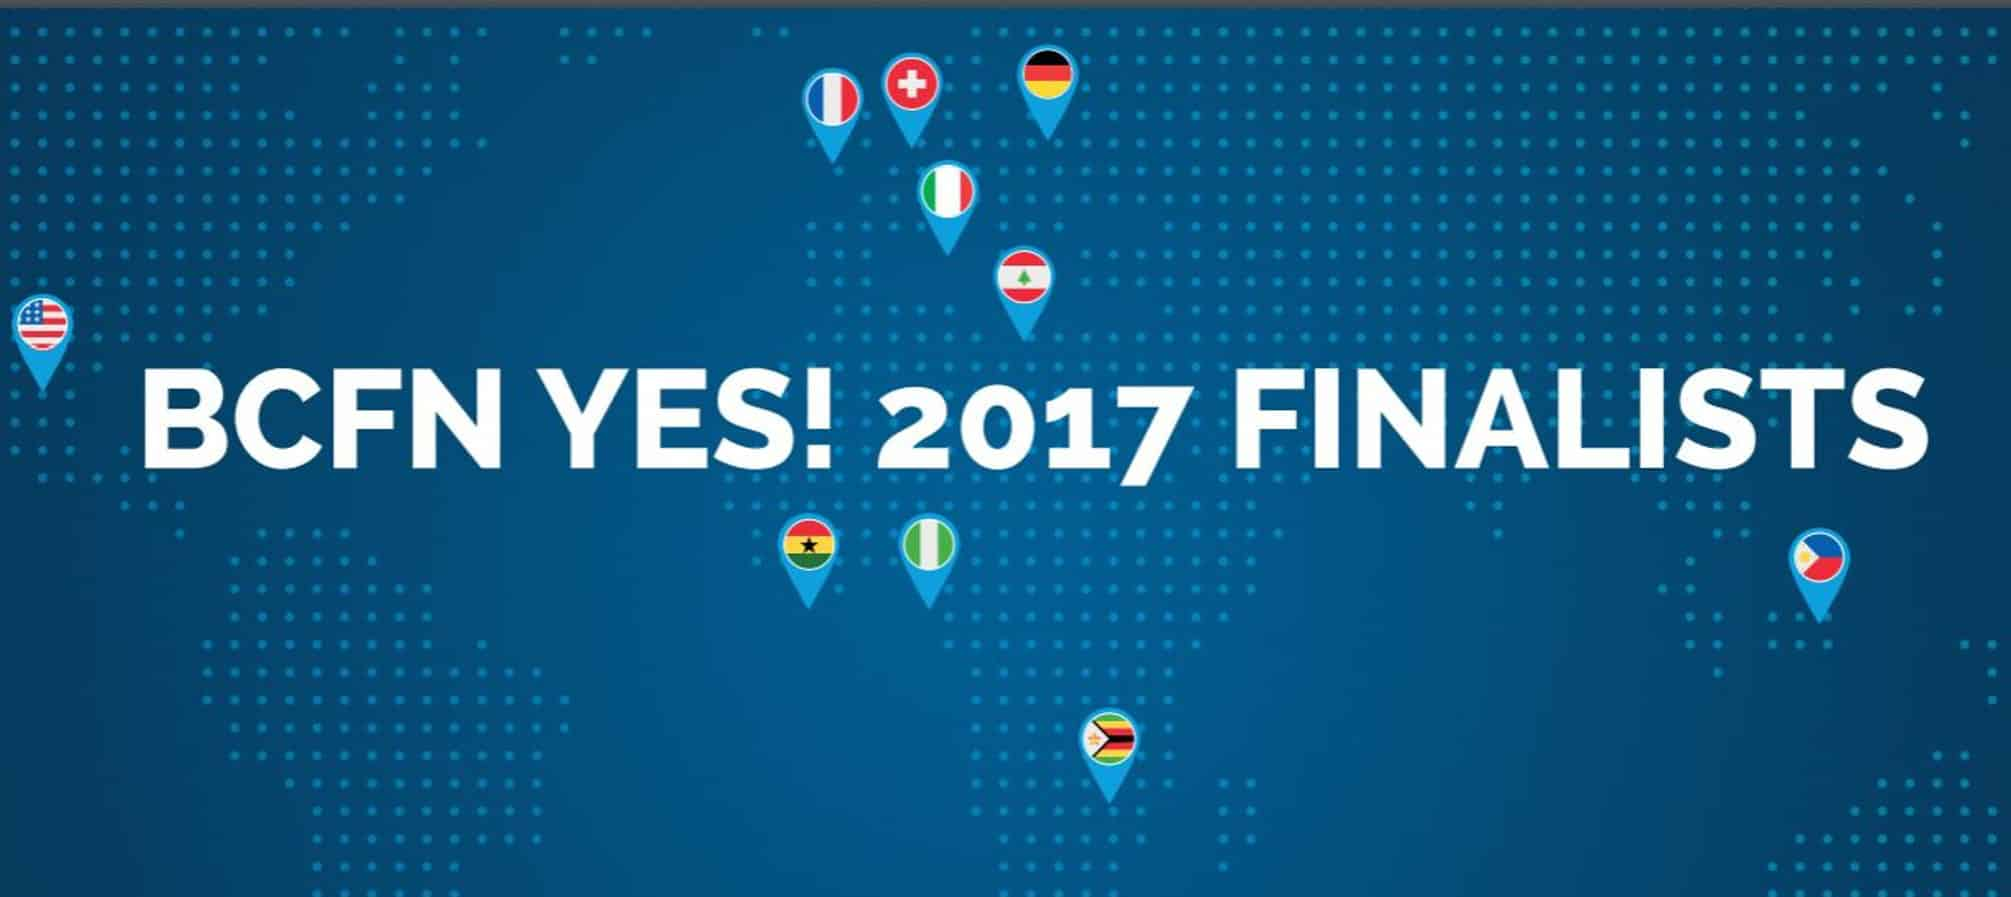 BCFN announces winners of the 2017 YES! competition, which inspires young researchers to meet global research needs on the sustainability of food systems.